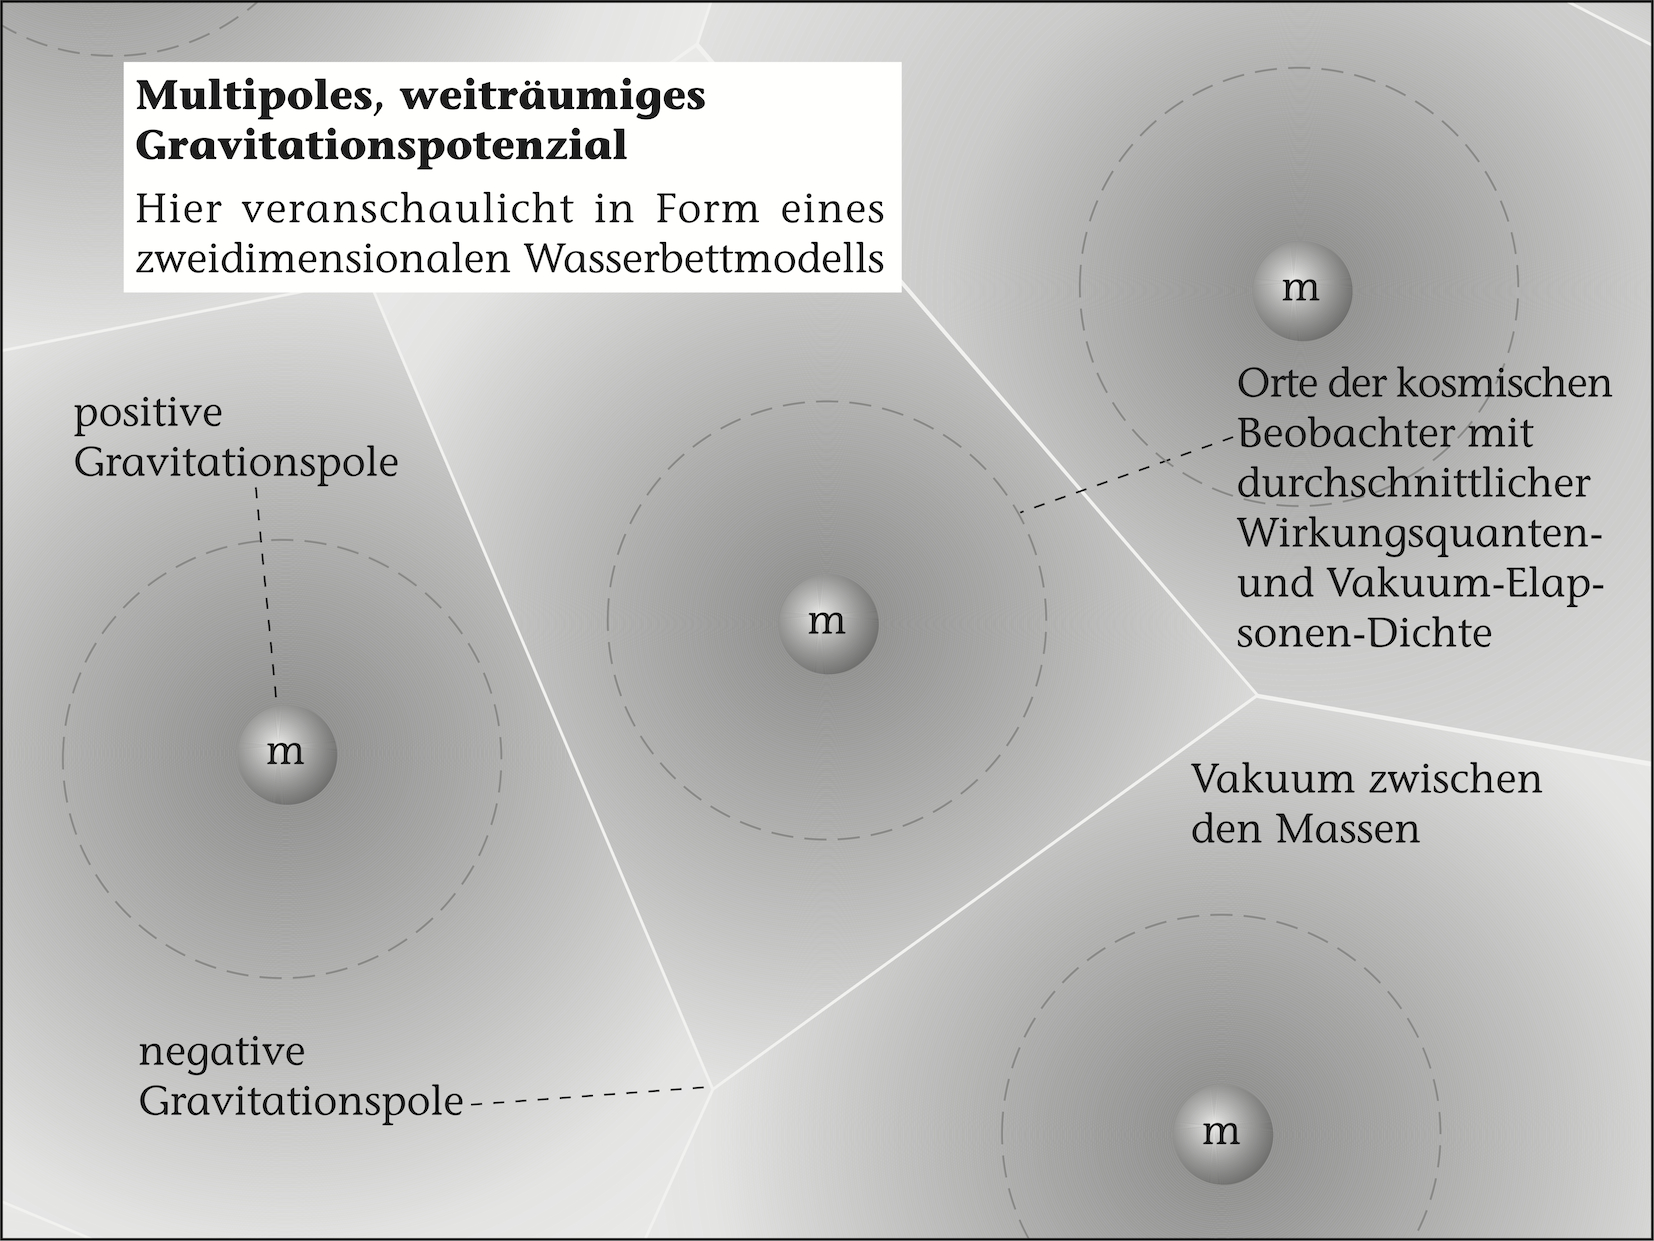 Mutlipoles, weiträumiges Gravitationspotenzial